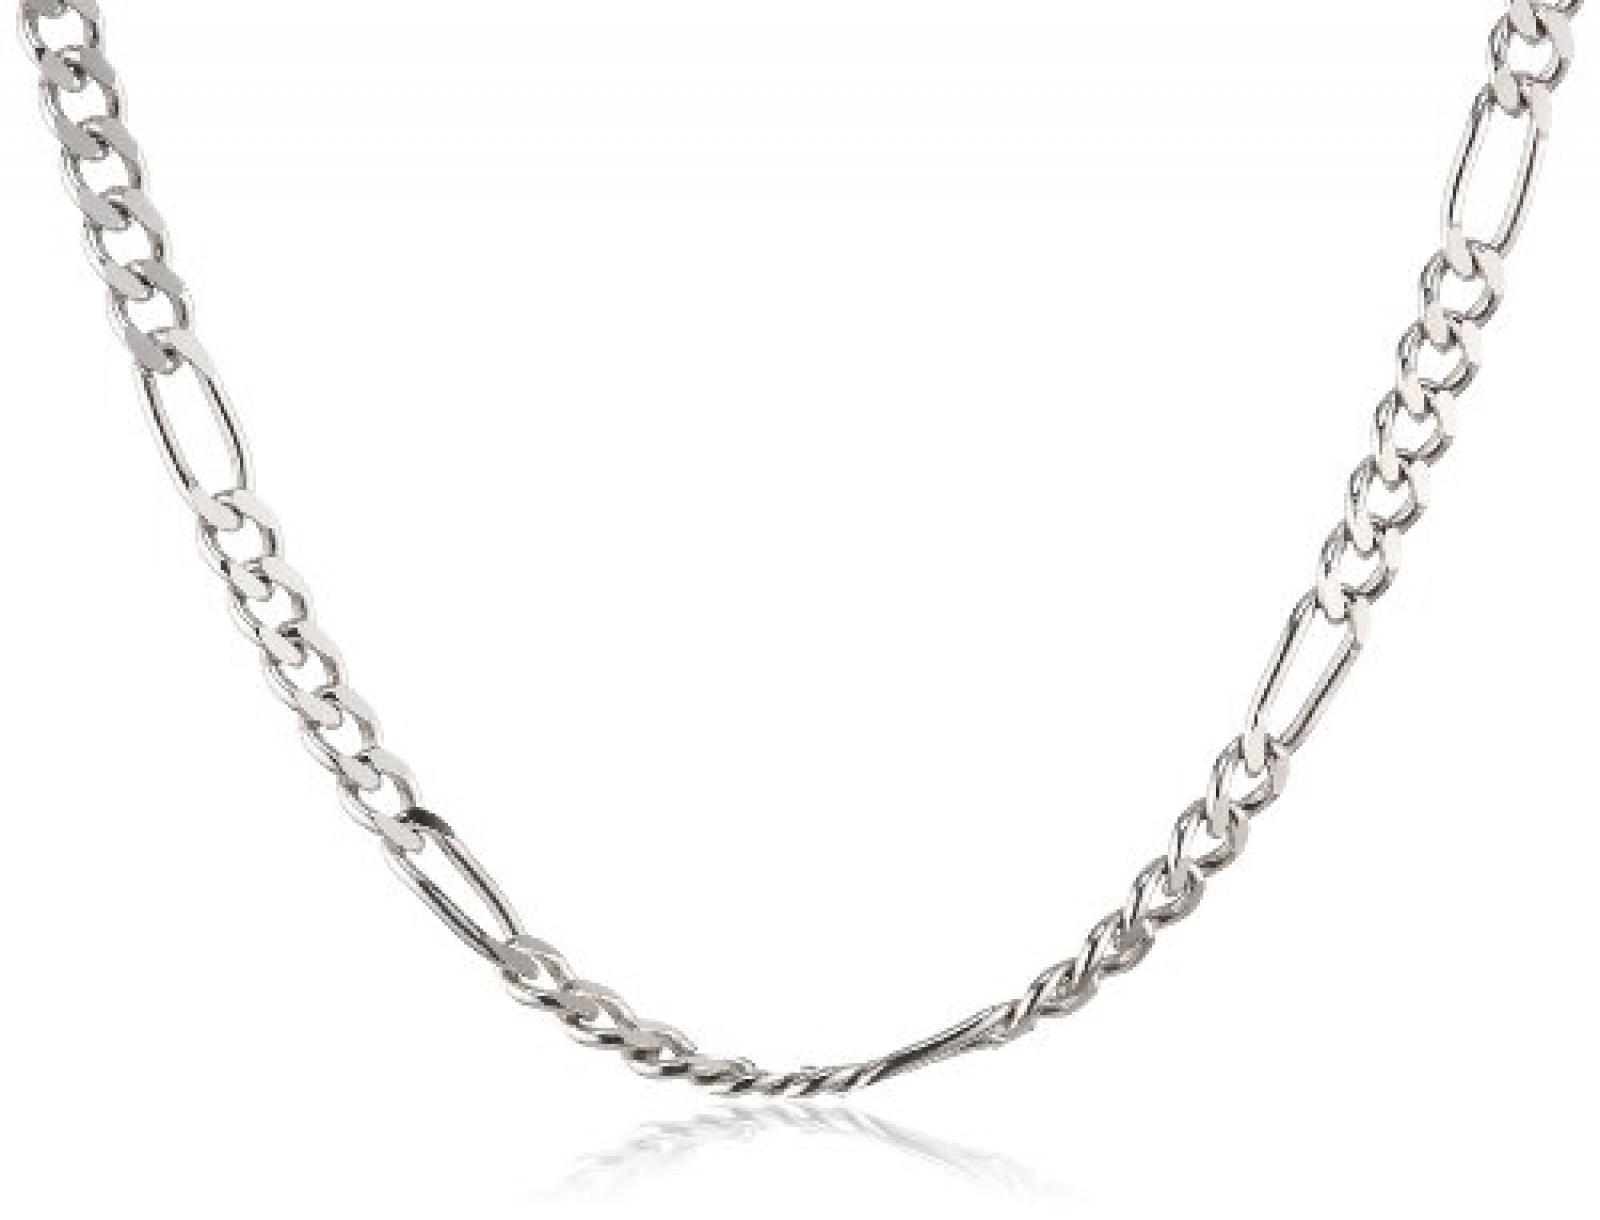 Amor Jewelry Unisex-Halskette 925 Sterling Silber 27885